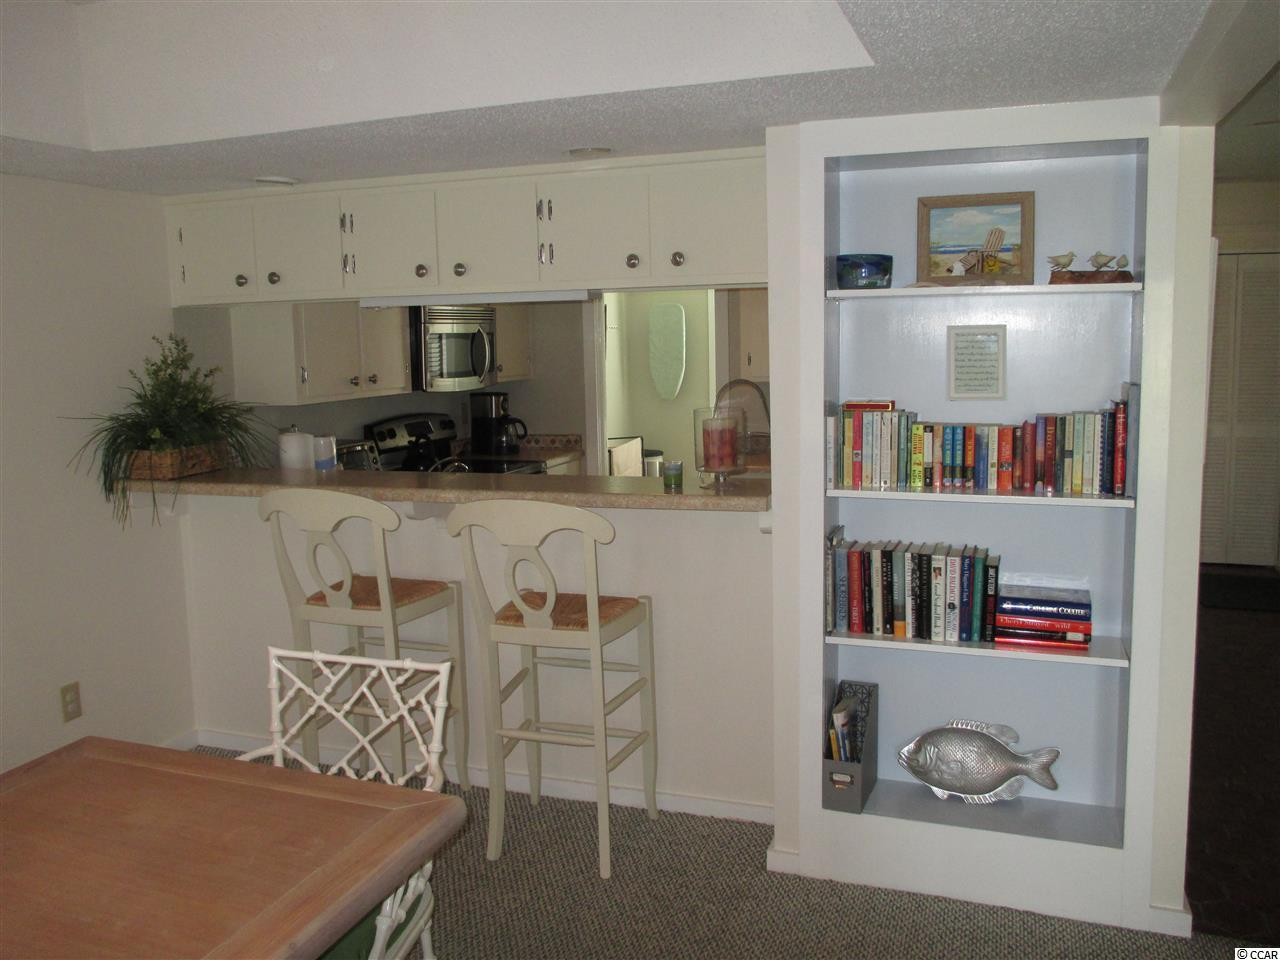 MLS #1715930 at  Inlet Point Villas - Litchfield for sale